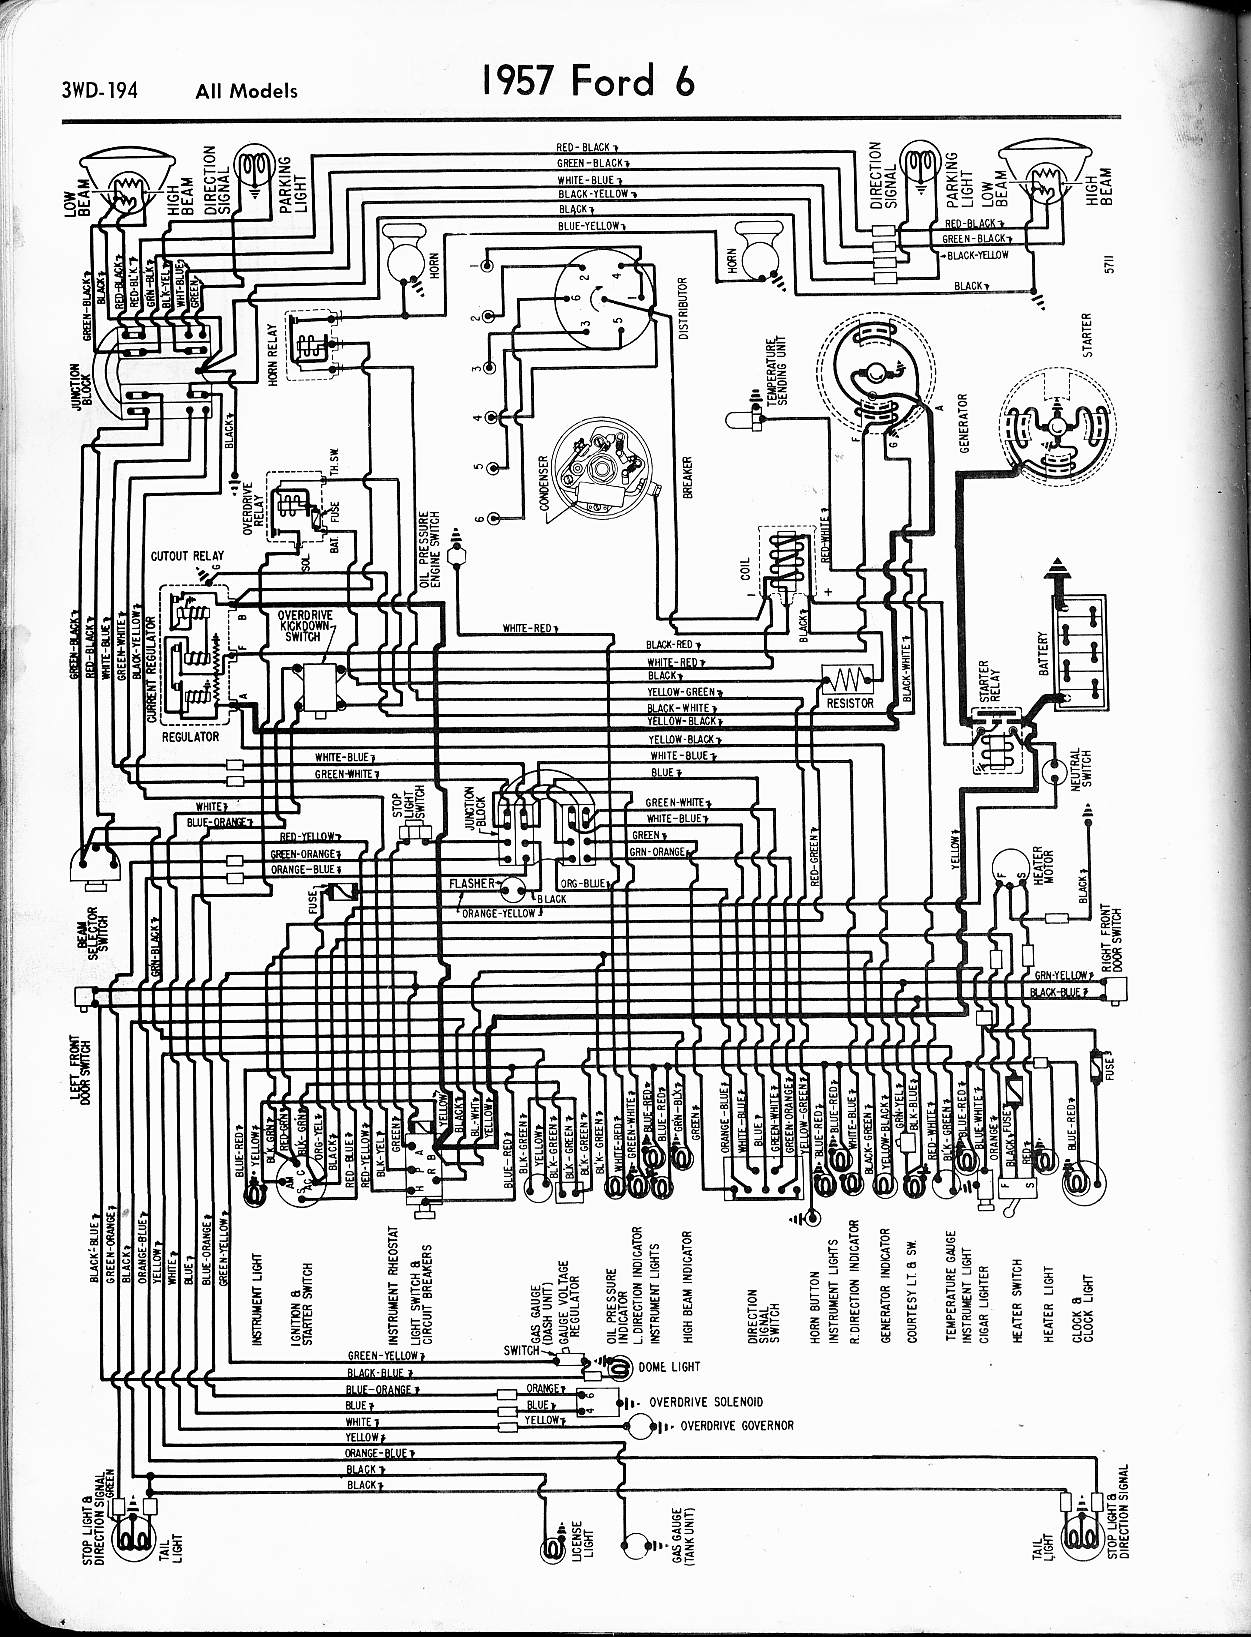 1998 mcneilus wiring diagram wiring library57 65 ford wiring diagrams bluebird wiring diagrams ford wiring diagrams